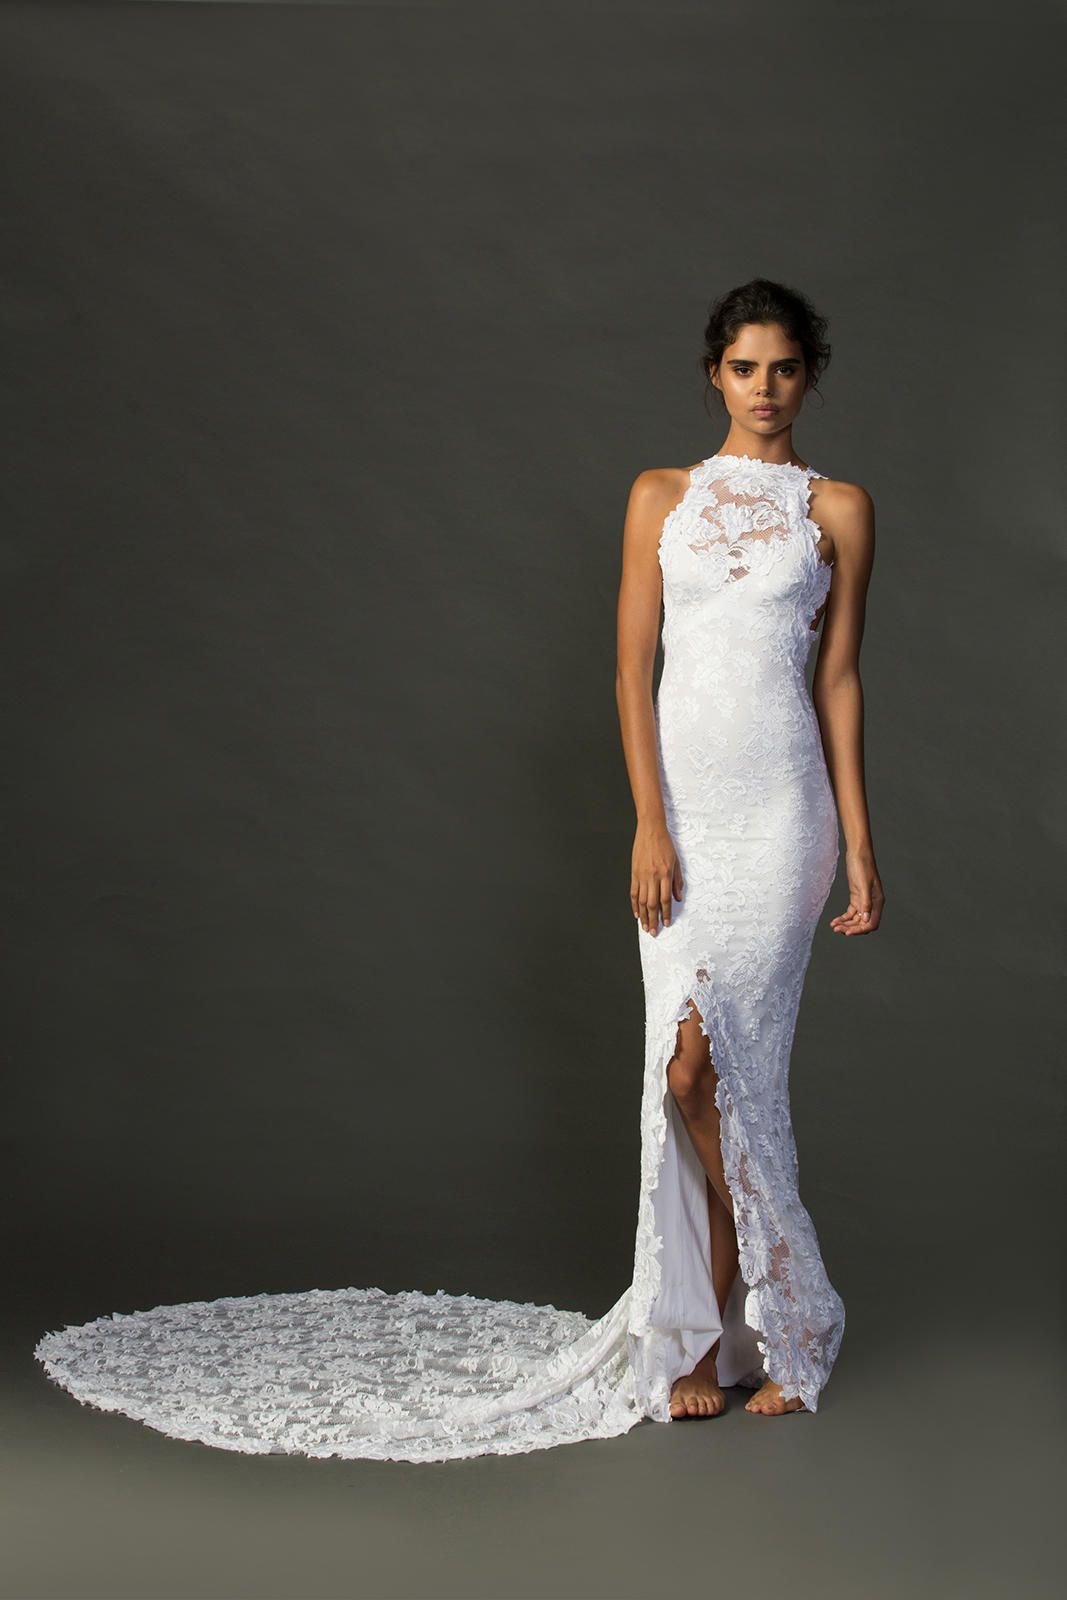 Our Completely Sexy And Chic Alexandra Dress Grace Loves Lace Untamed Romance Collection